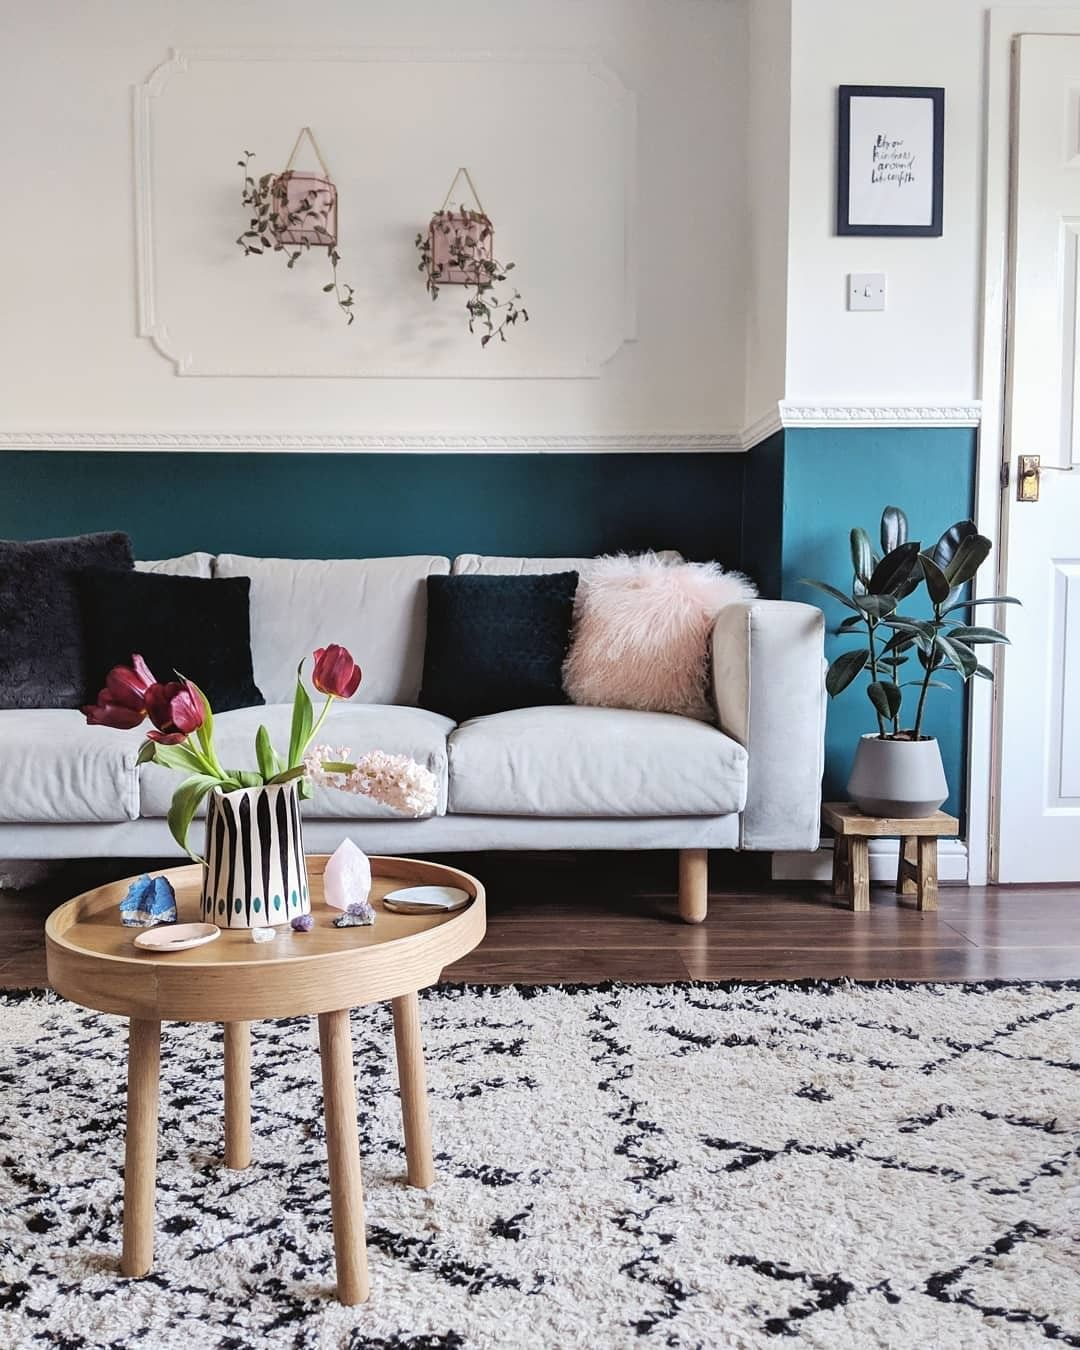 How To Decorate Your Home On A Budget - Paint